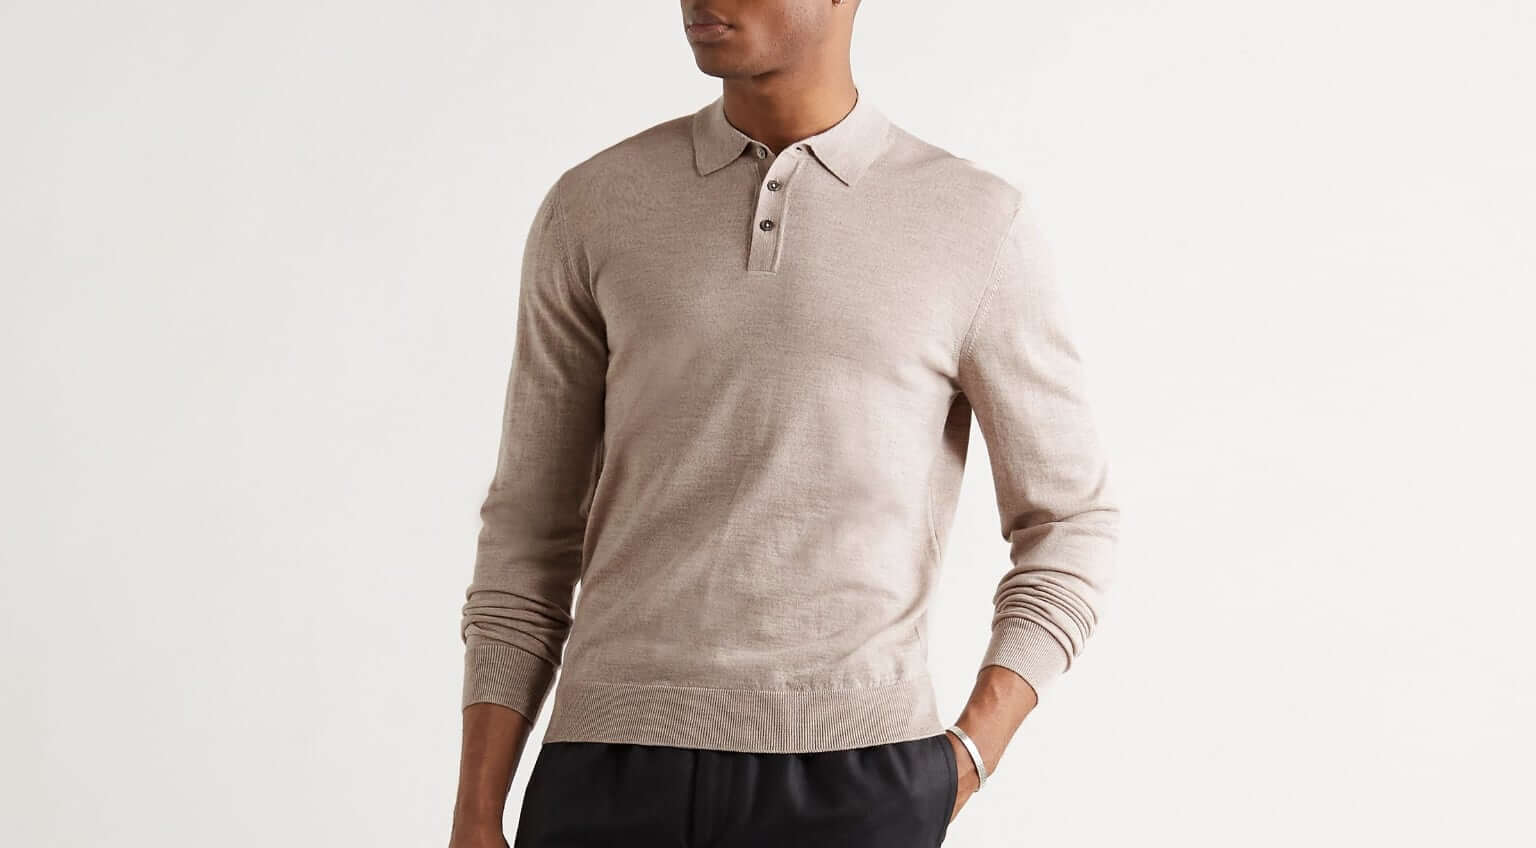 Update Your Wardrobe With a Long-Sleeve Polo